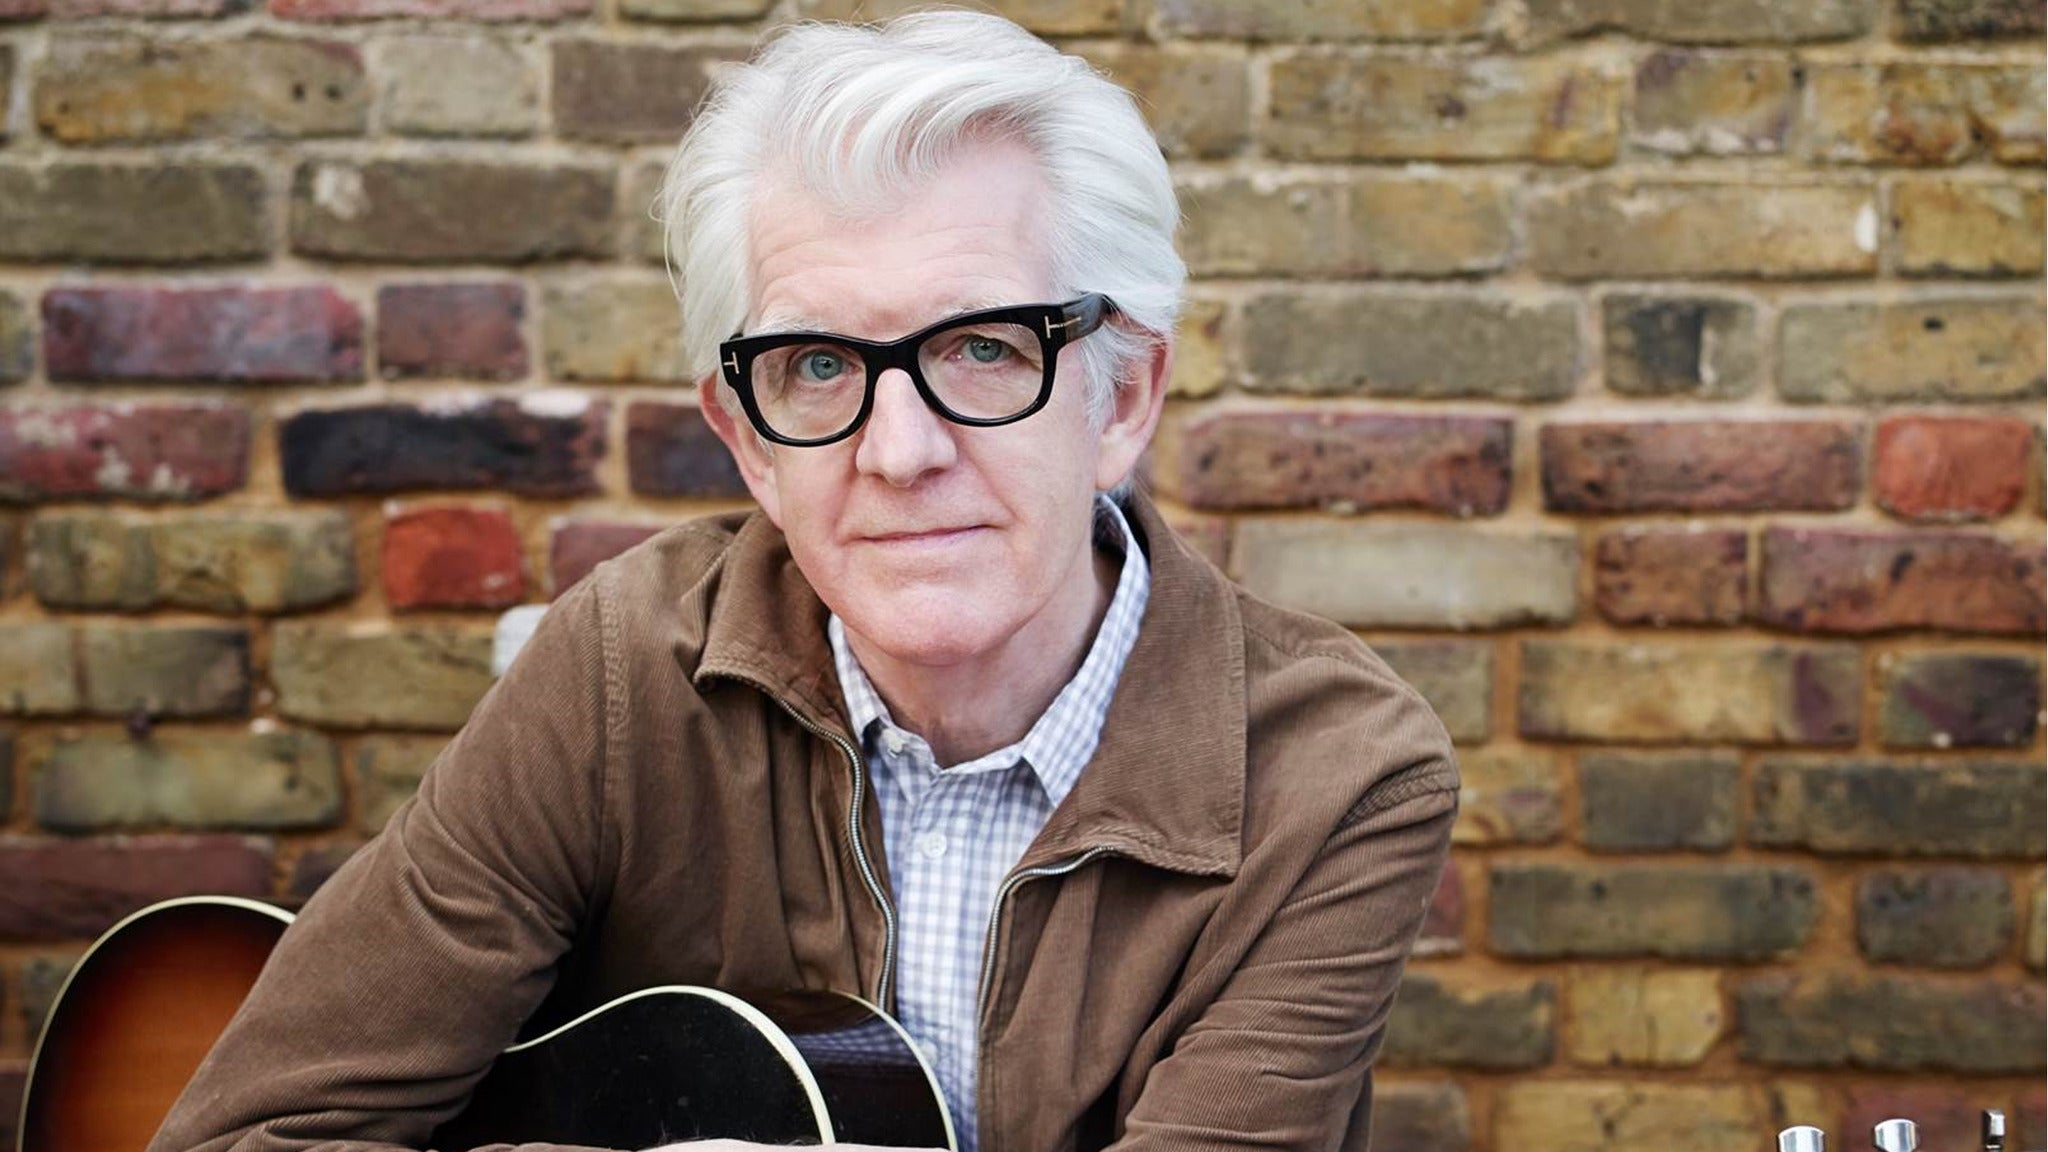 Nick Lowe's Quality Rock & Roll Revue Starring Los Straitjackets with Special Guest Esther Rose